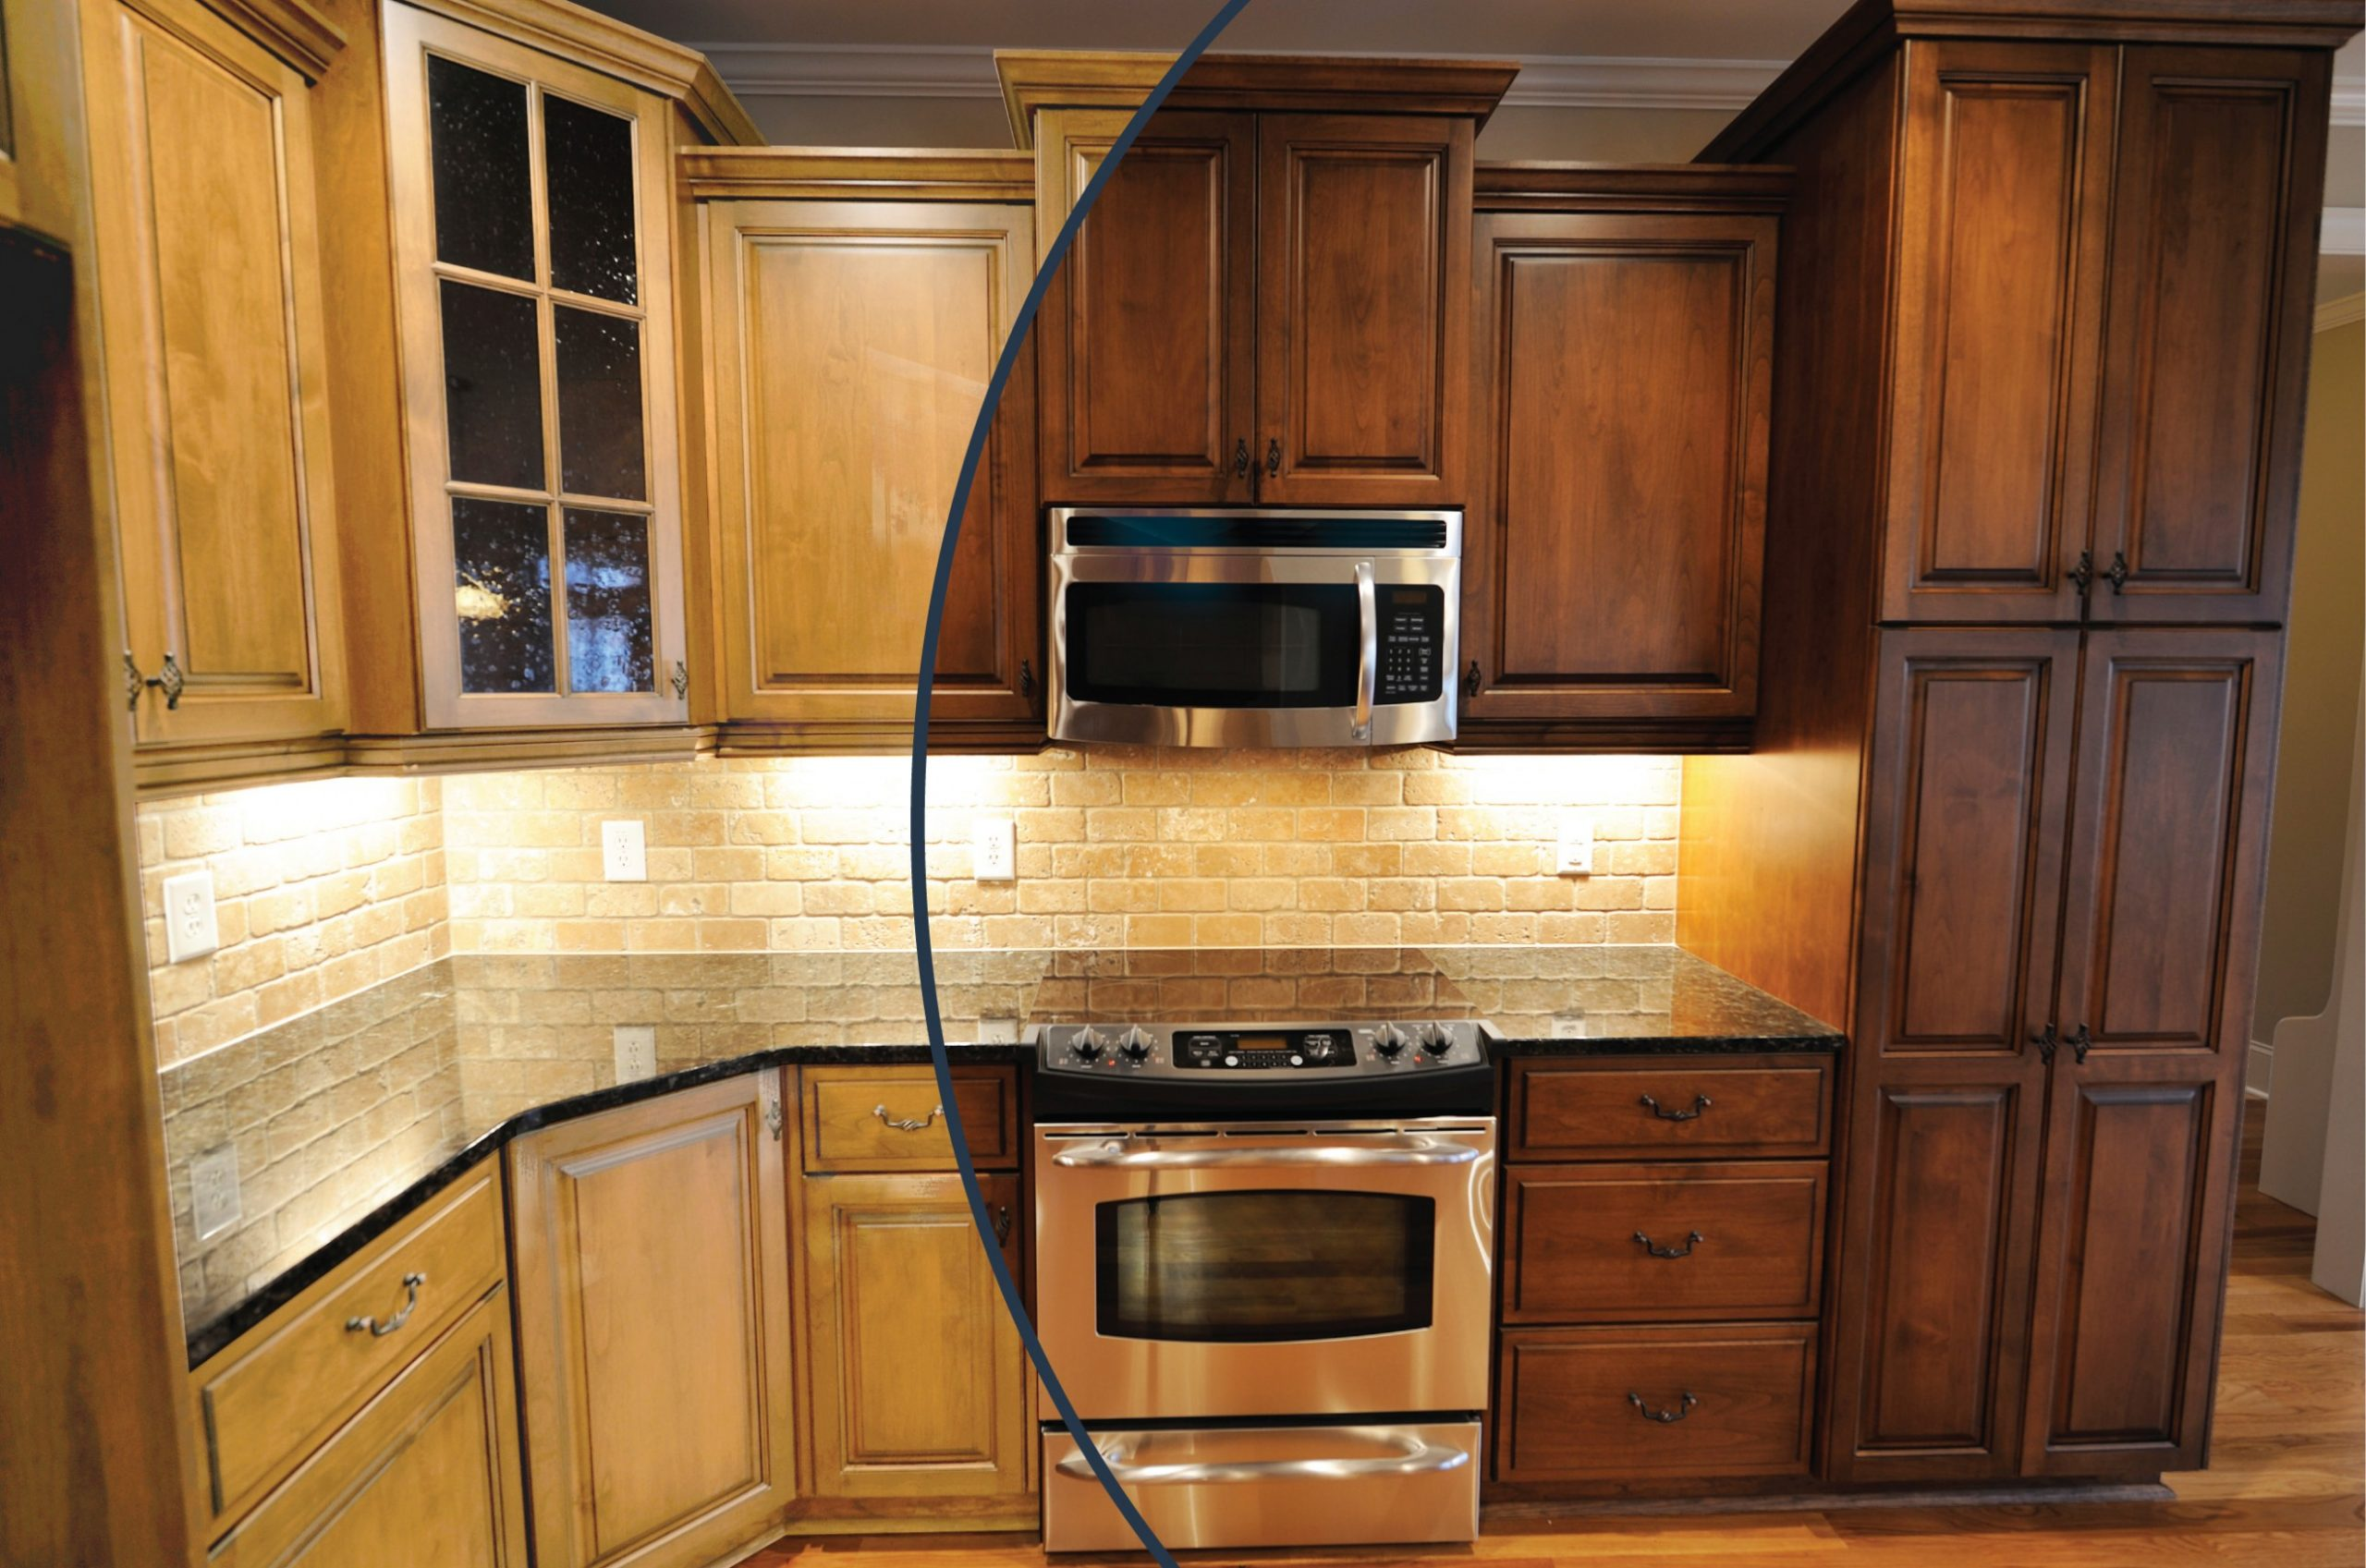 Our Kitchen Reno with N-Hance - Kitchen Cabinet Refacing Niagara Falls